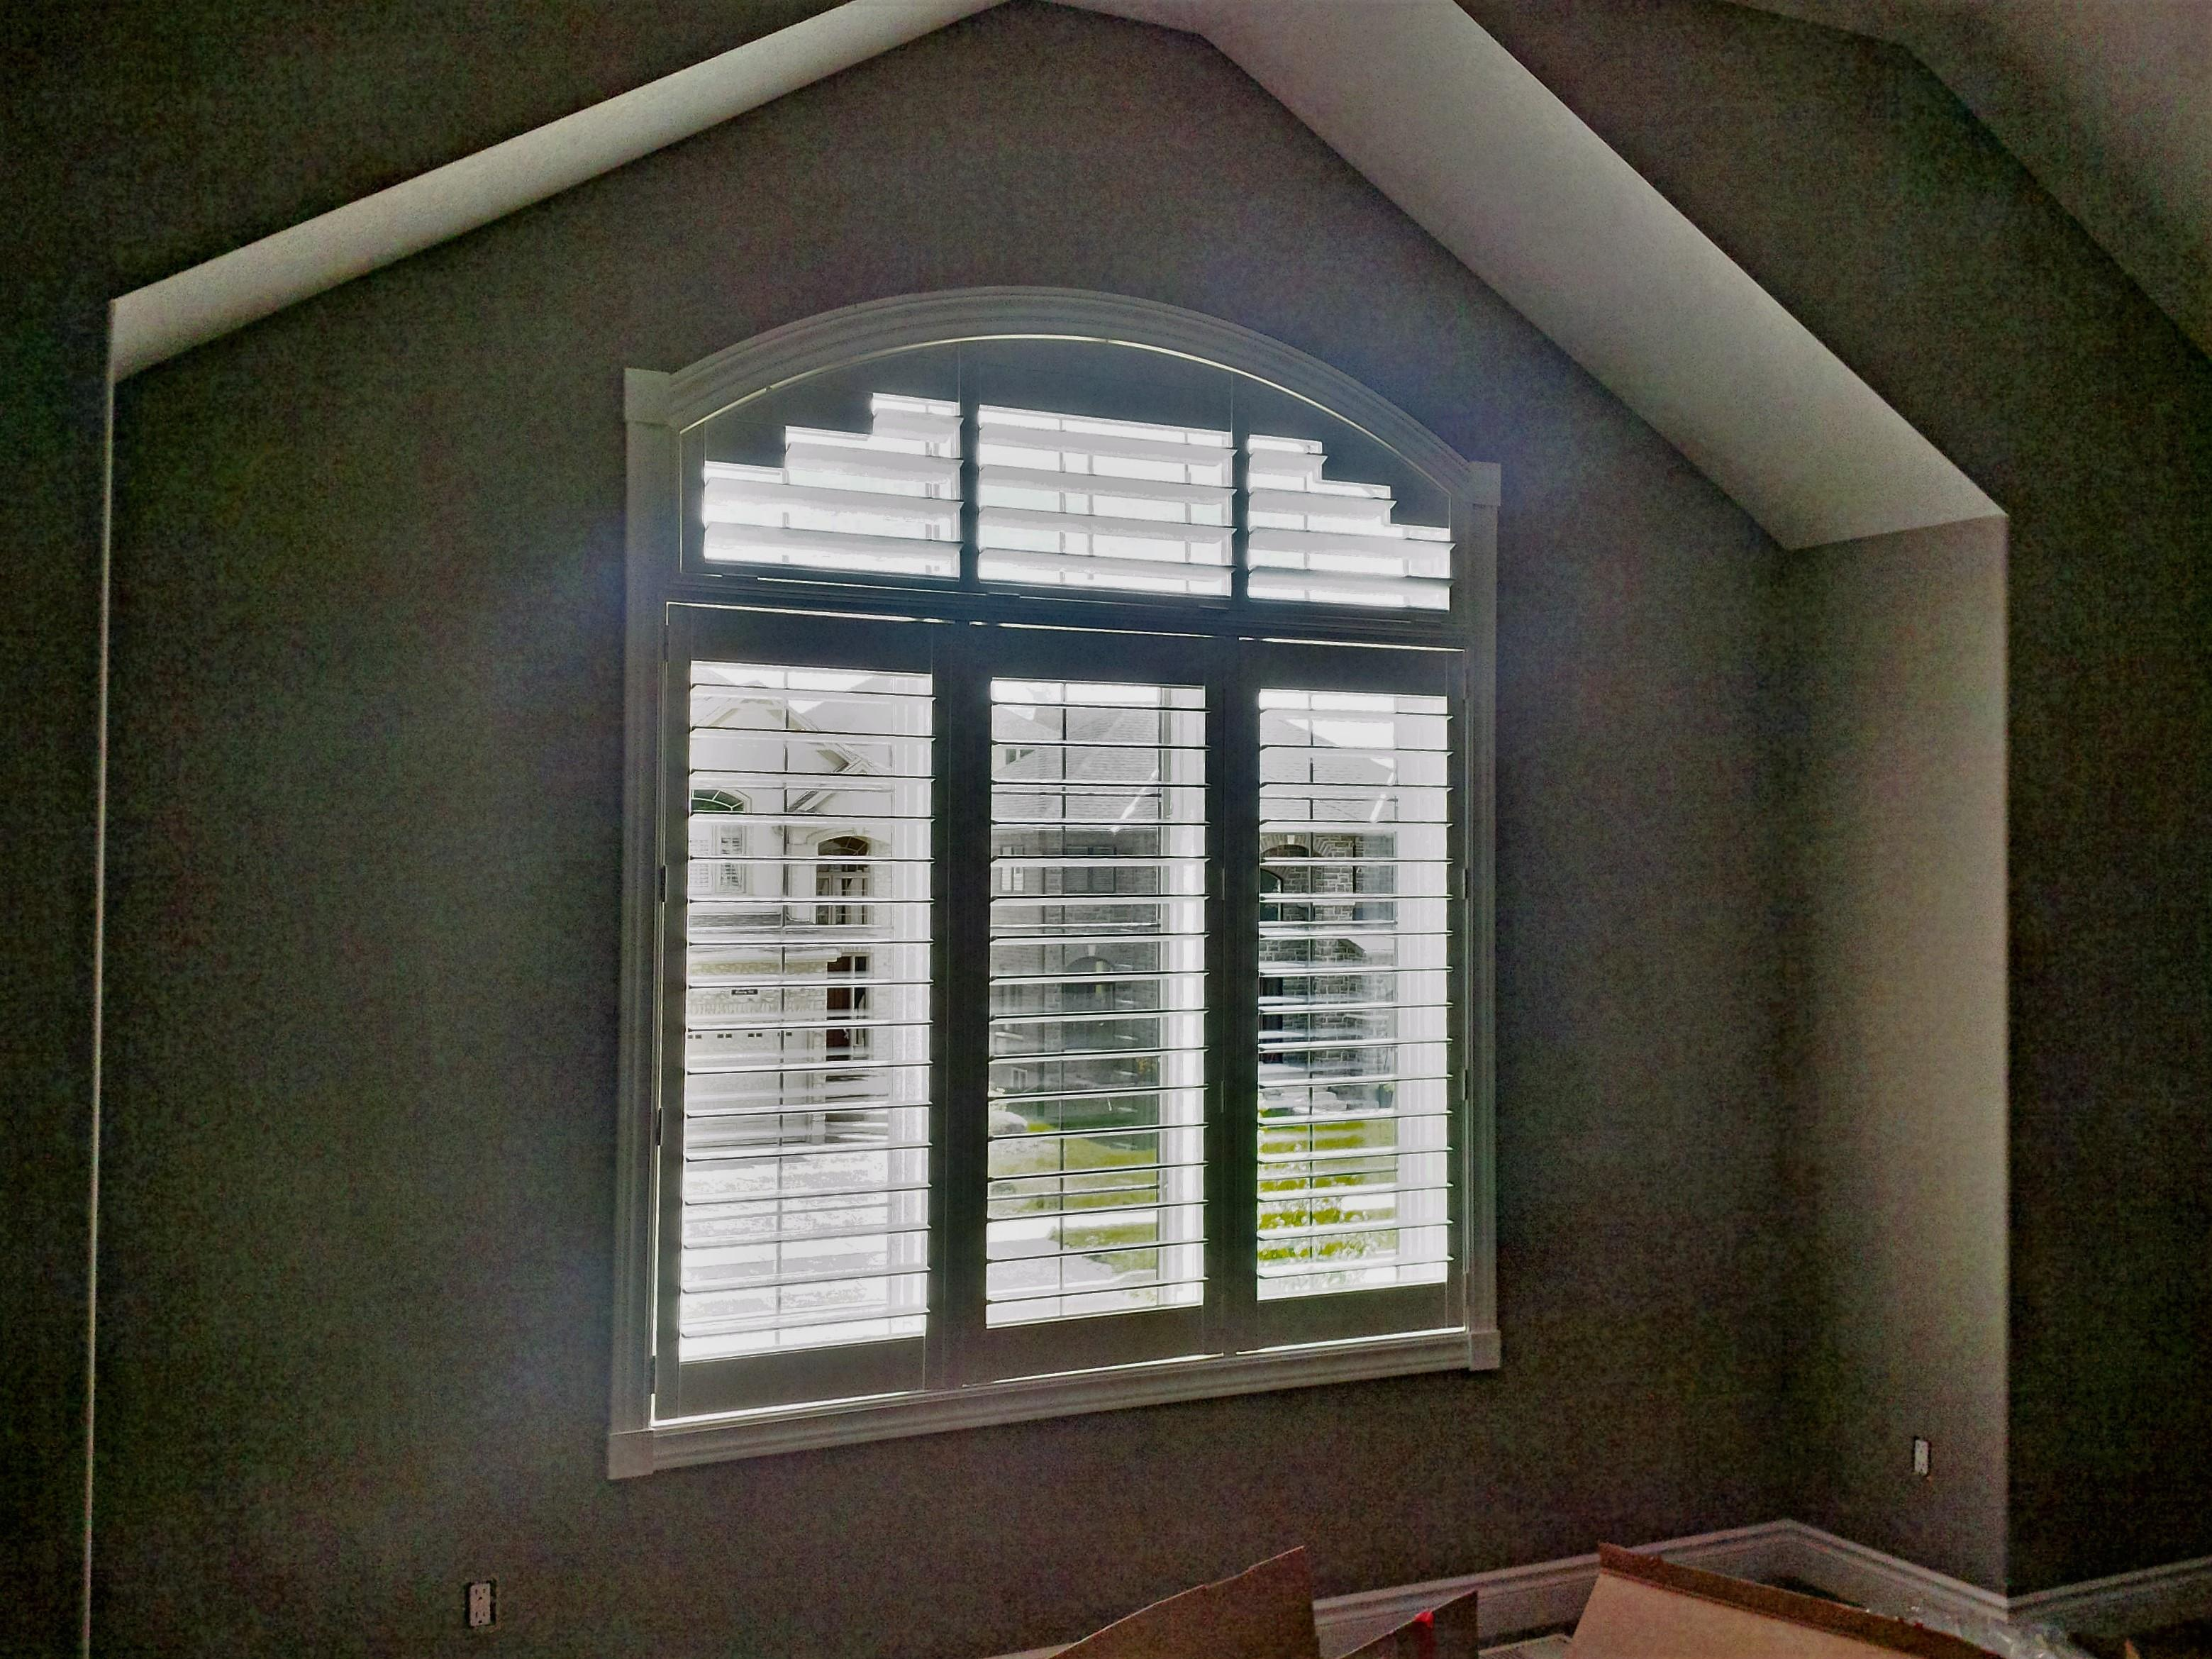 Budget Blinds à Waterloo: This custom designed shutter follows the contour of the arch perfectly. If you require light control in a room with an arched window shutters just might be the most functional option.